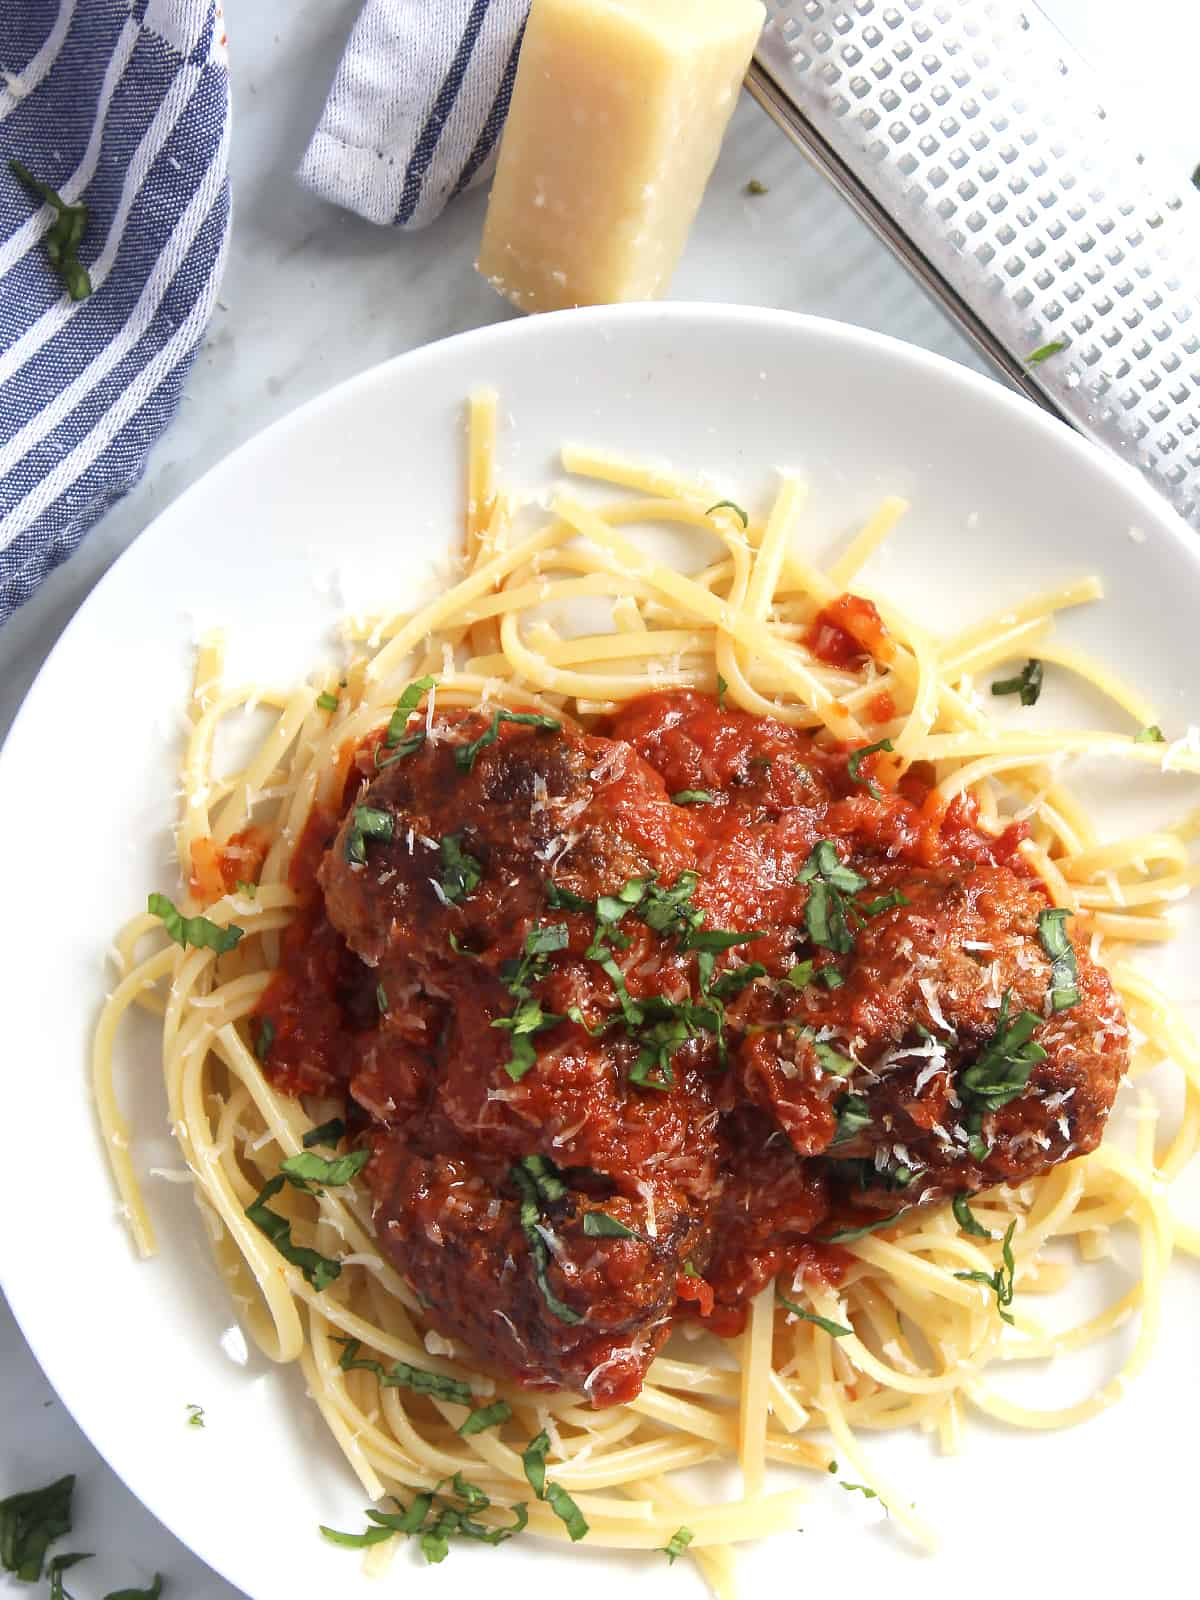 Overhead shot of bison meatballs served with spaghetti